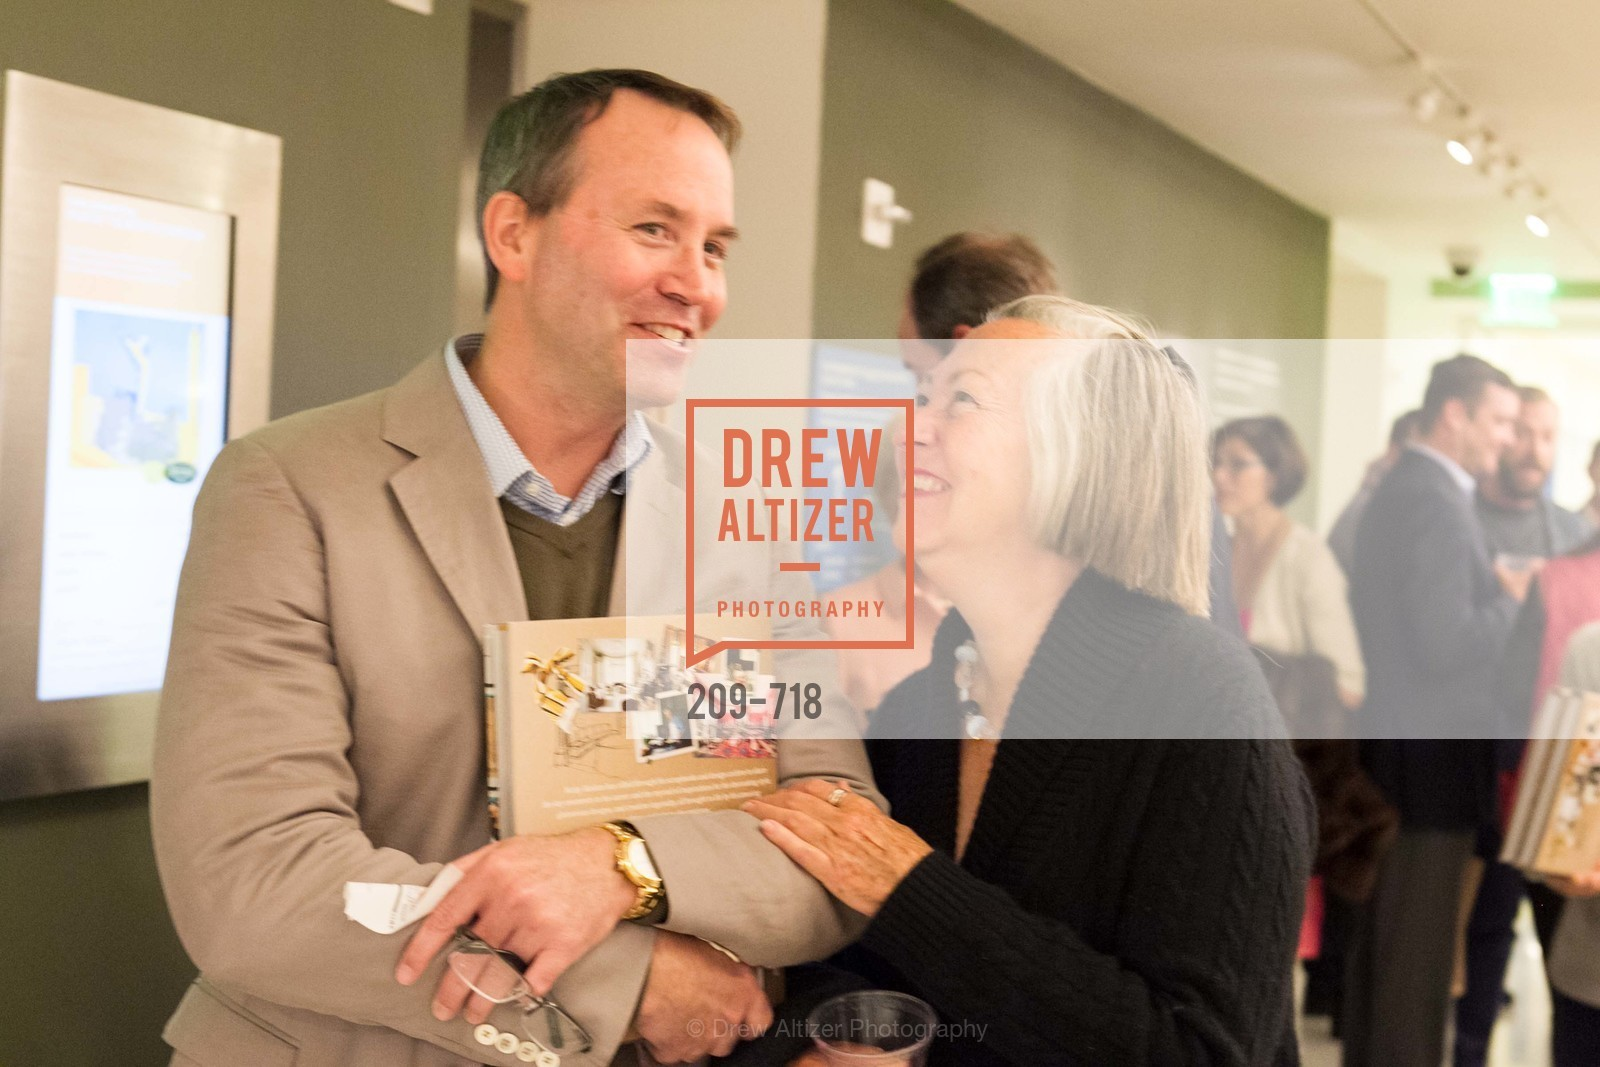 Chip Zecher, Sally Swing, ICAA Hosts NICKY HASLAM'S Lecture and Book Signing, US, May 12th, 2015,Drew Altizer, Drew Altizer Photography, full-service agency, private events, San Francisco photographer, photographer california